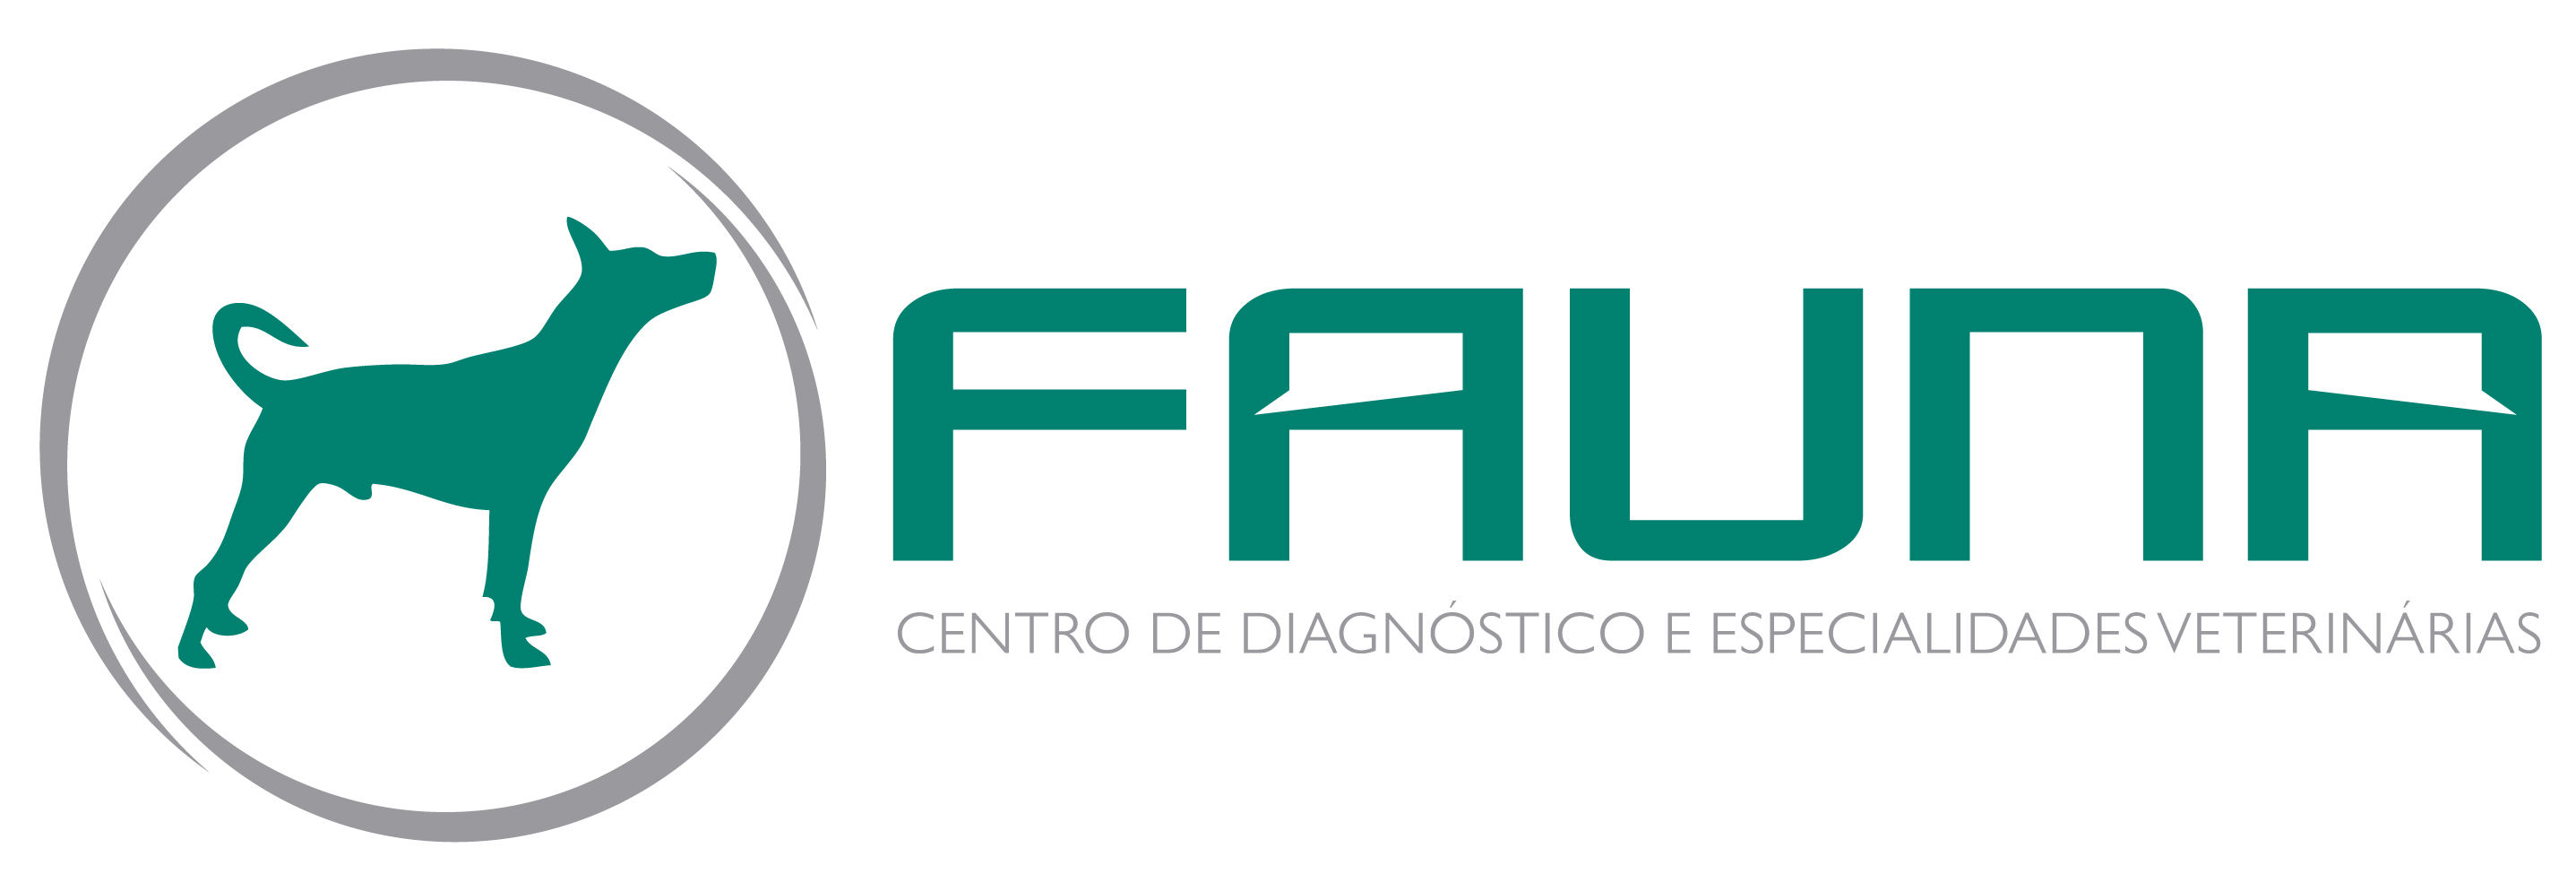 Fauna Centro de Diagnostico e Especialidades Veterinarias